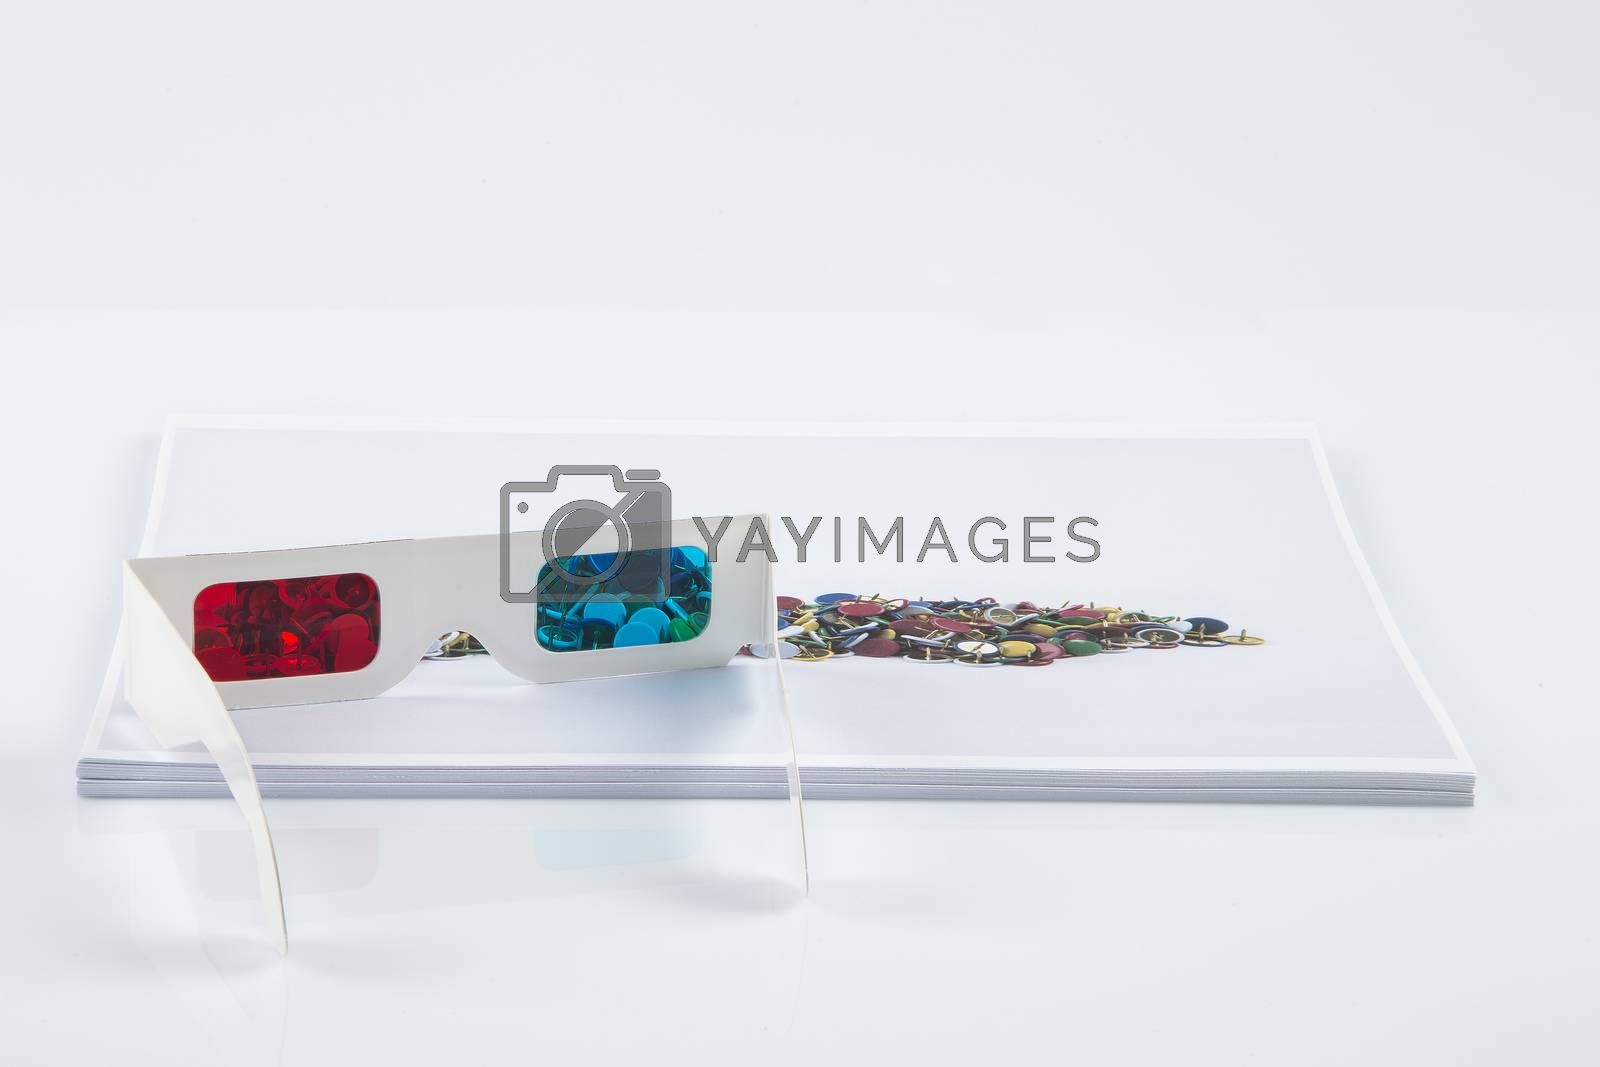 Royalty free image of 3D Print: white 3D anaglyphic Red Blue glasses and paper printed pins by paocasa